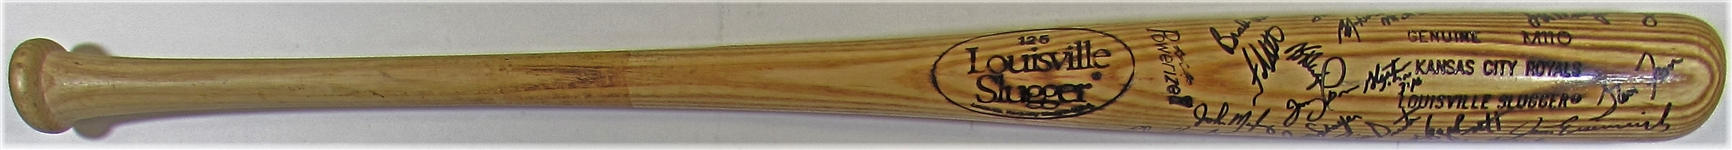 1989 K.C. Royals Team Signed Bat